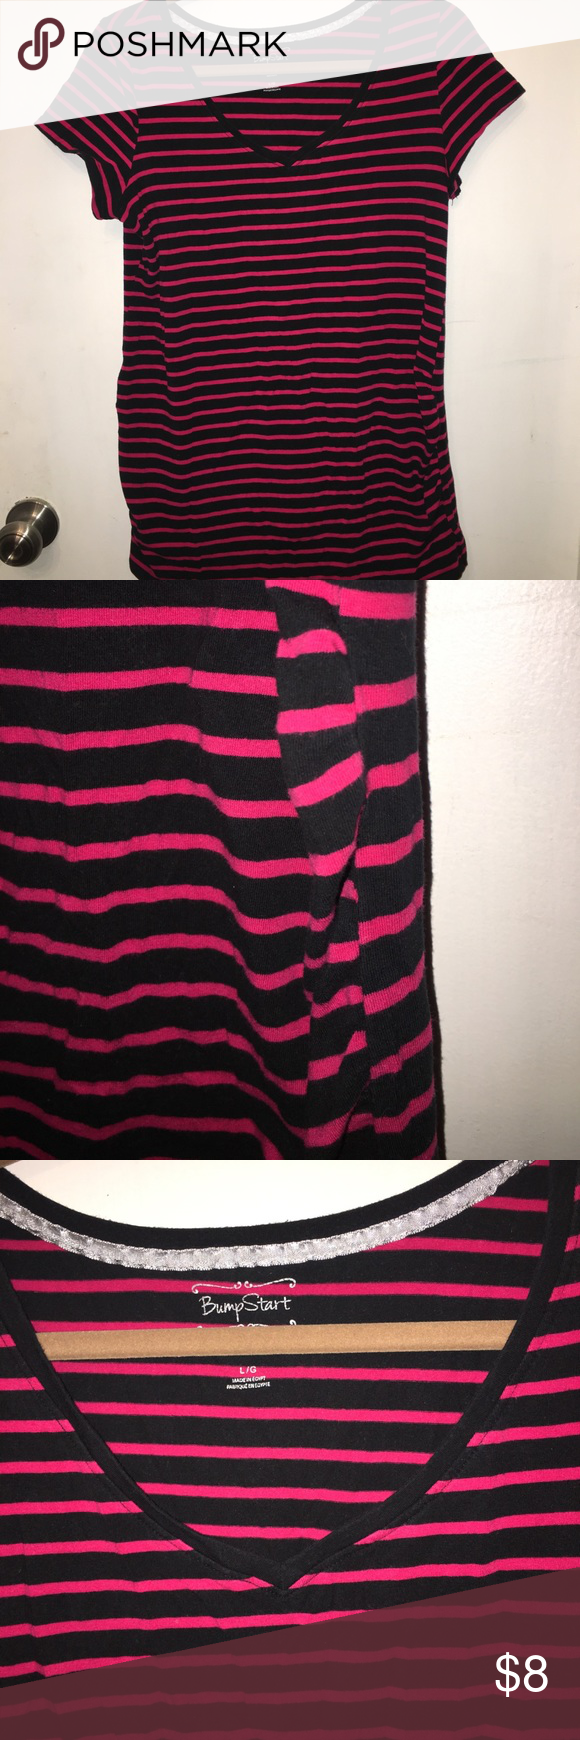 Black and pink stripe Maternity Tee. Size Large Bump Start by Motherhood Maternity black and pink stripe fitted tee. Size Large. Looks adorable with leggings, jeans, or shorts!! BumpStart Tops Tees - Short Sleeve